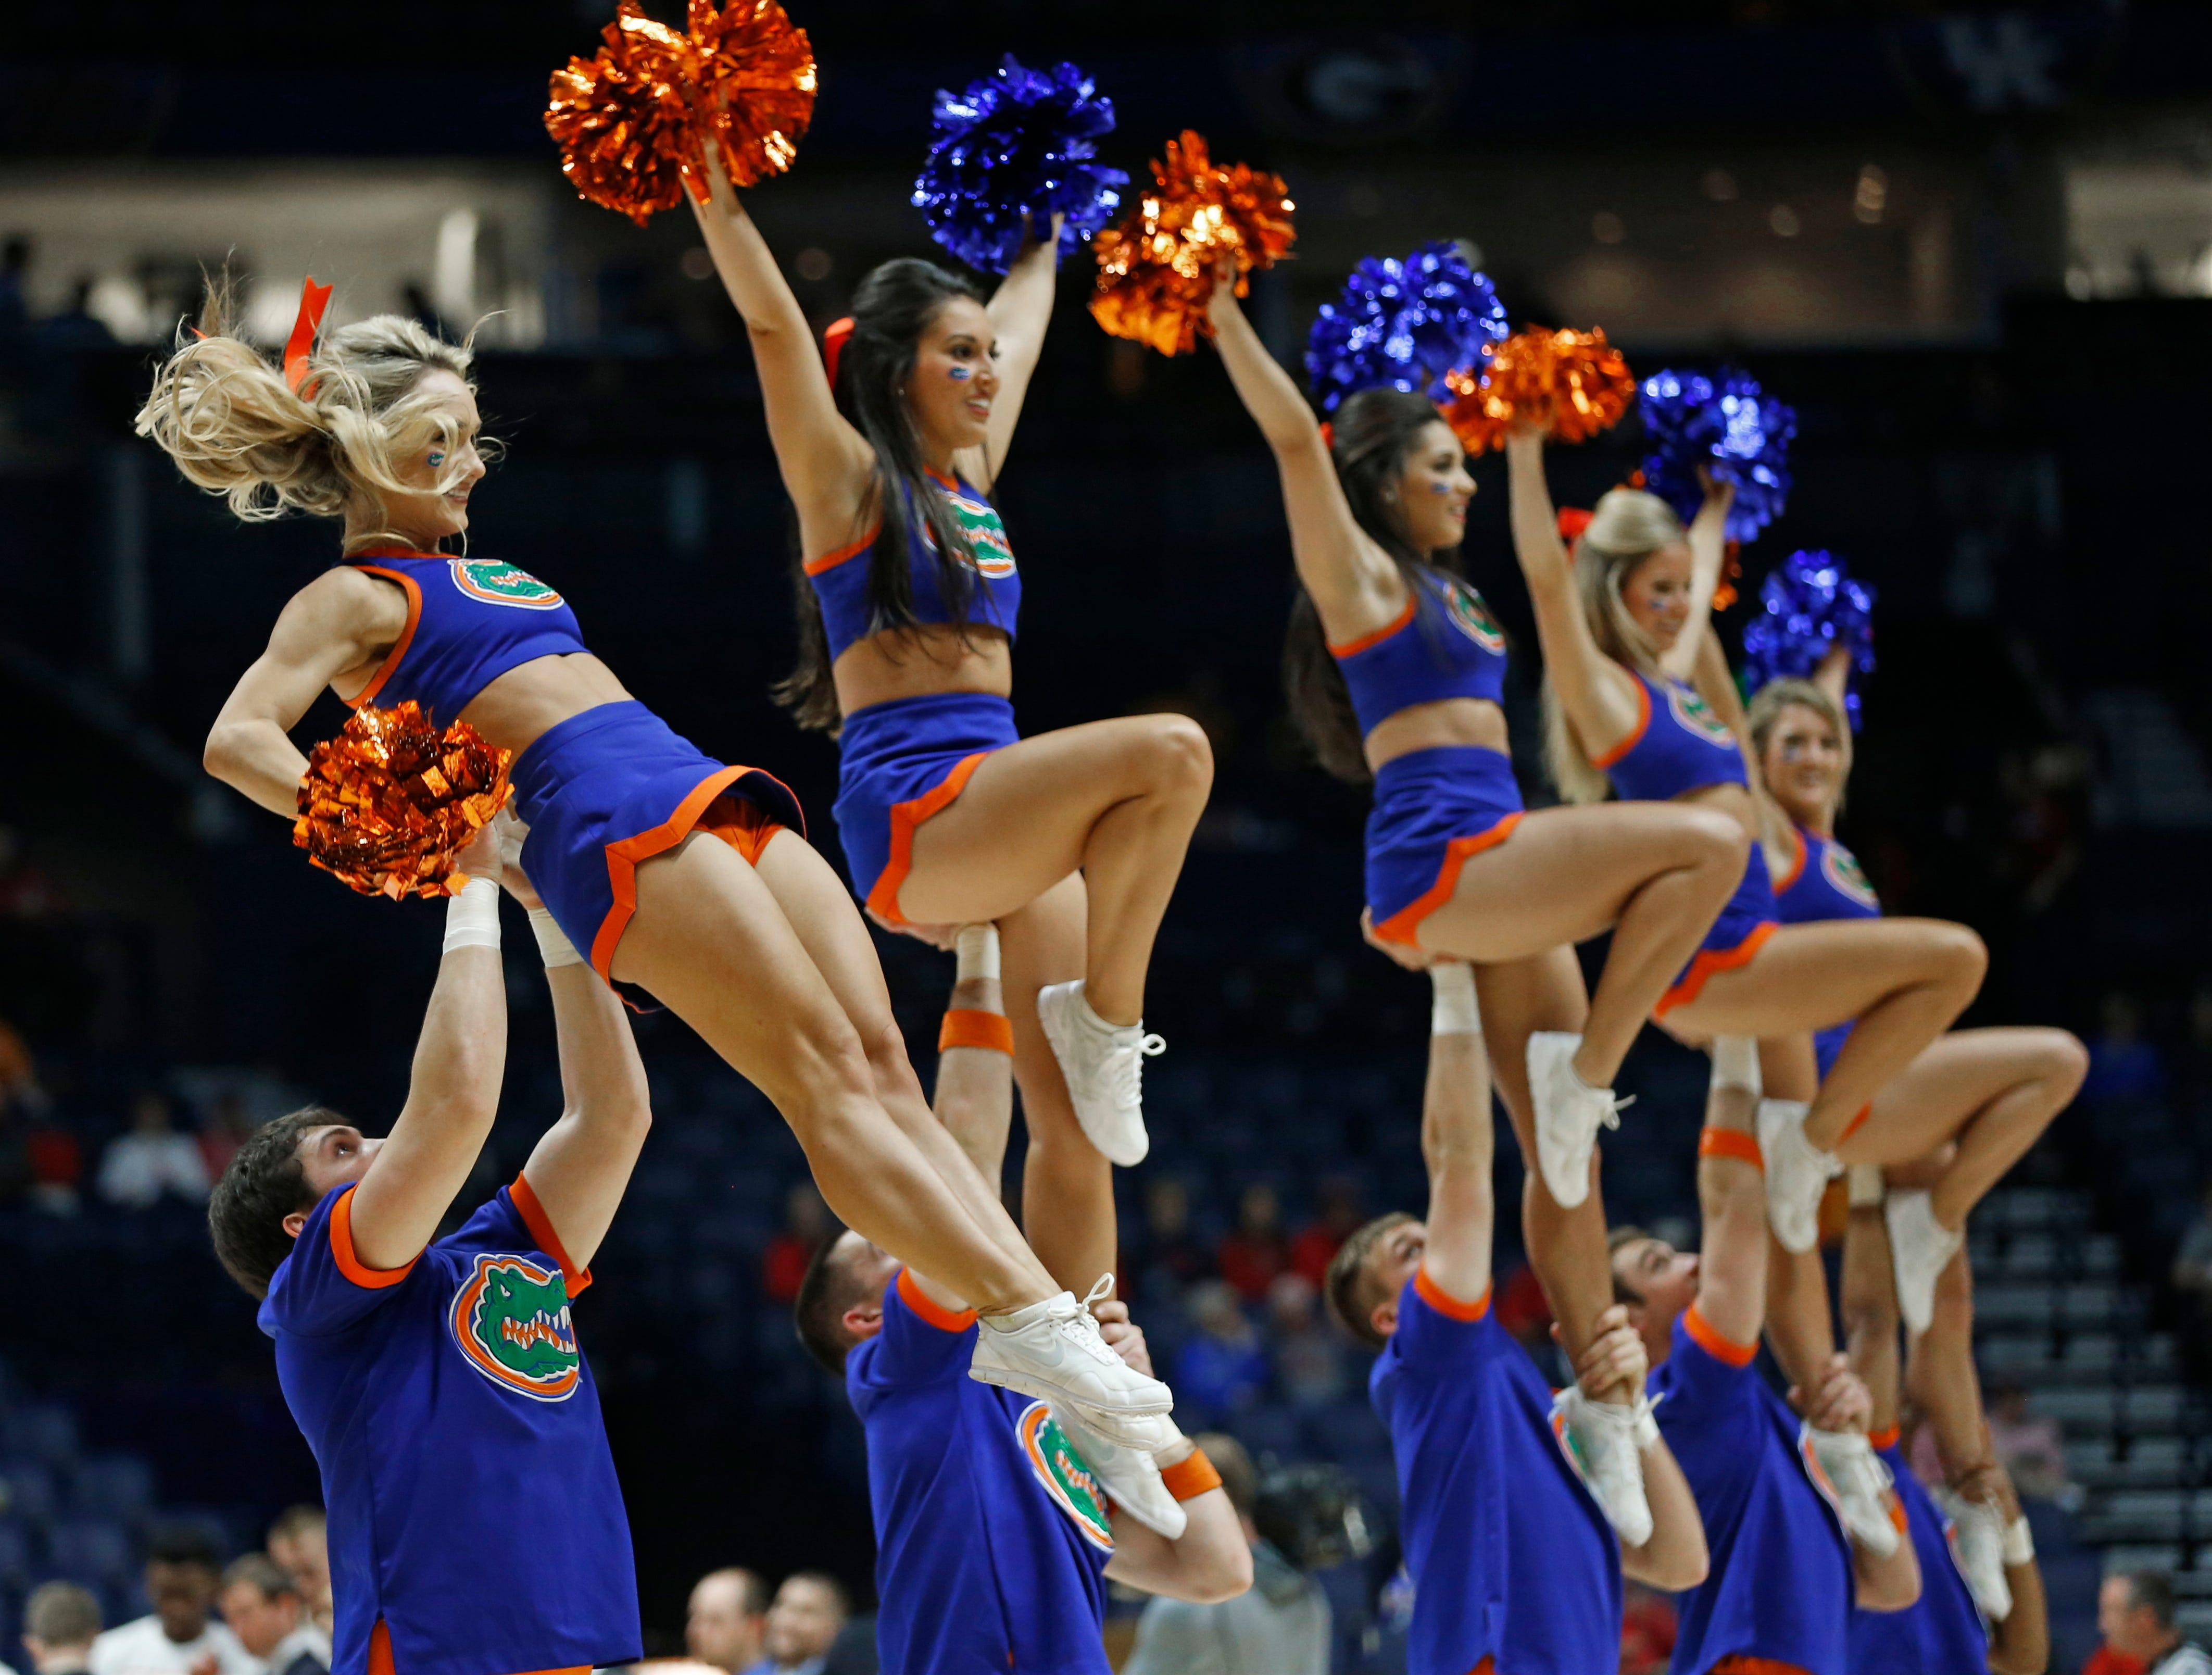 Florida cheerleaders perform during the first half of an NCAA college basketball game against Arkansas in the Southeastern Conference tournament in Nashville, Tenn., Thursday, March 10, 2016. (AP Photo/John Bazemore)